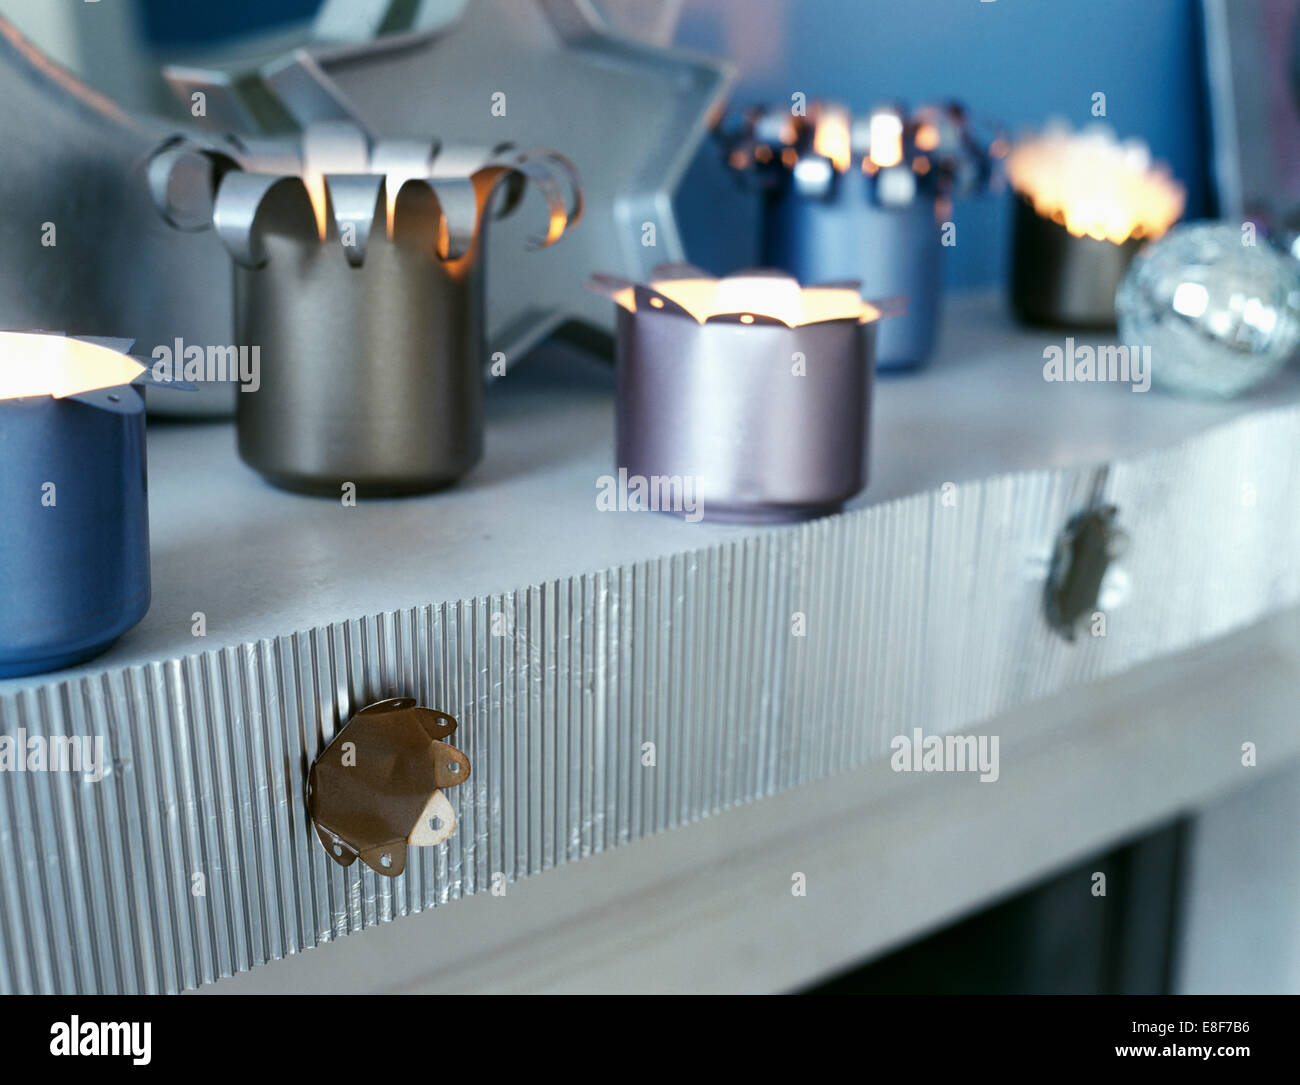 Close-up of lighted tea lights in candle holders made from old tins on shelf with silver corrugated card trim - Stock Image